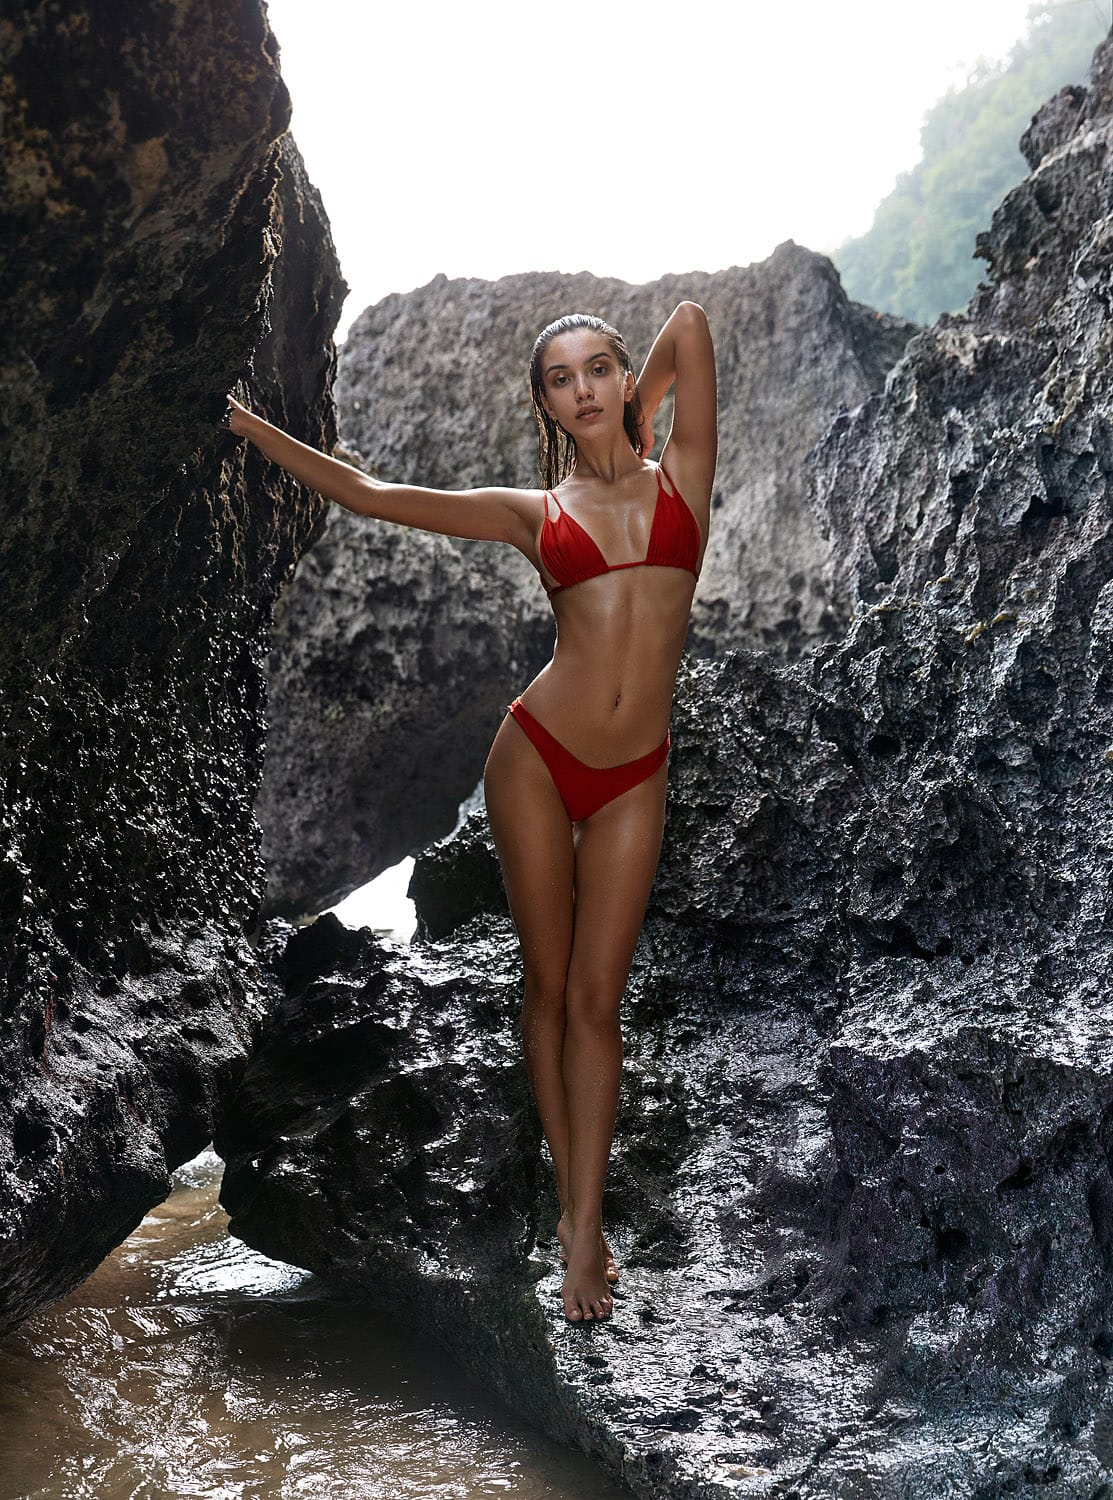 Balistarz-model-Sasha-AP-red-bikini-shot-betwen-sea-rocks